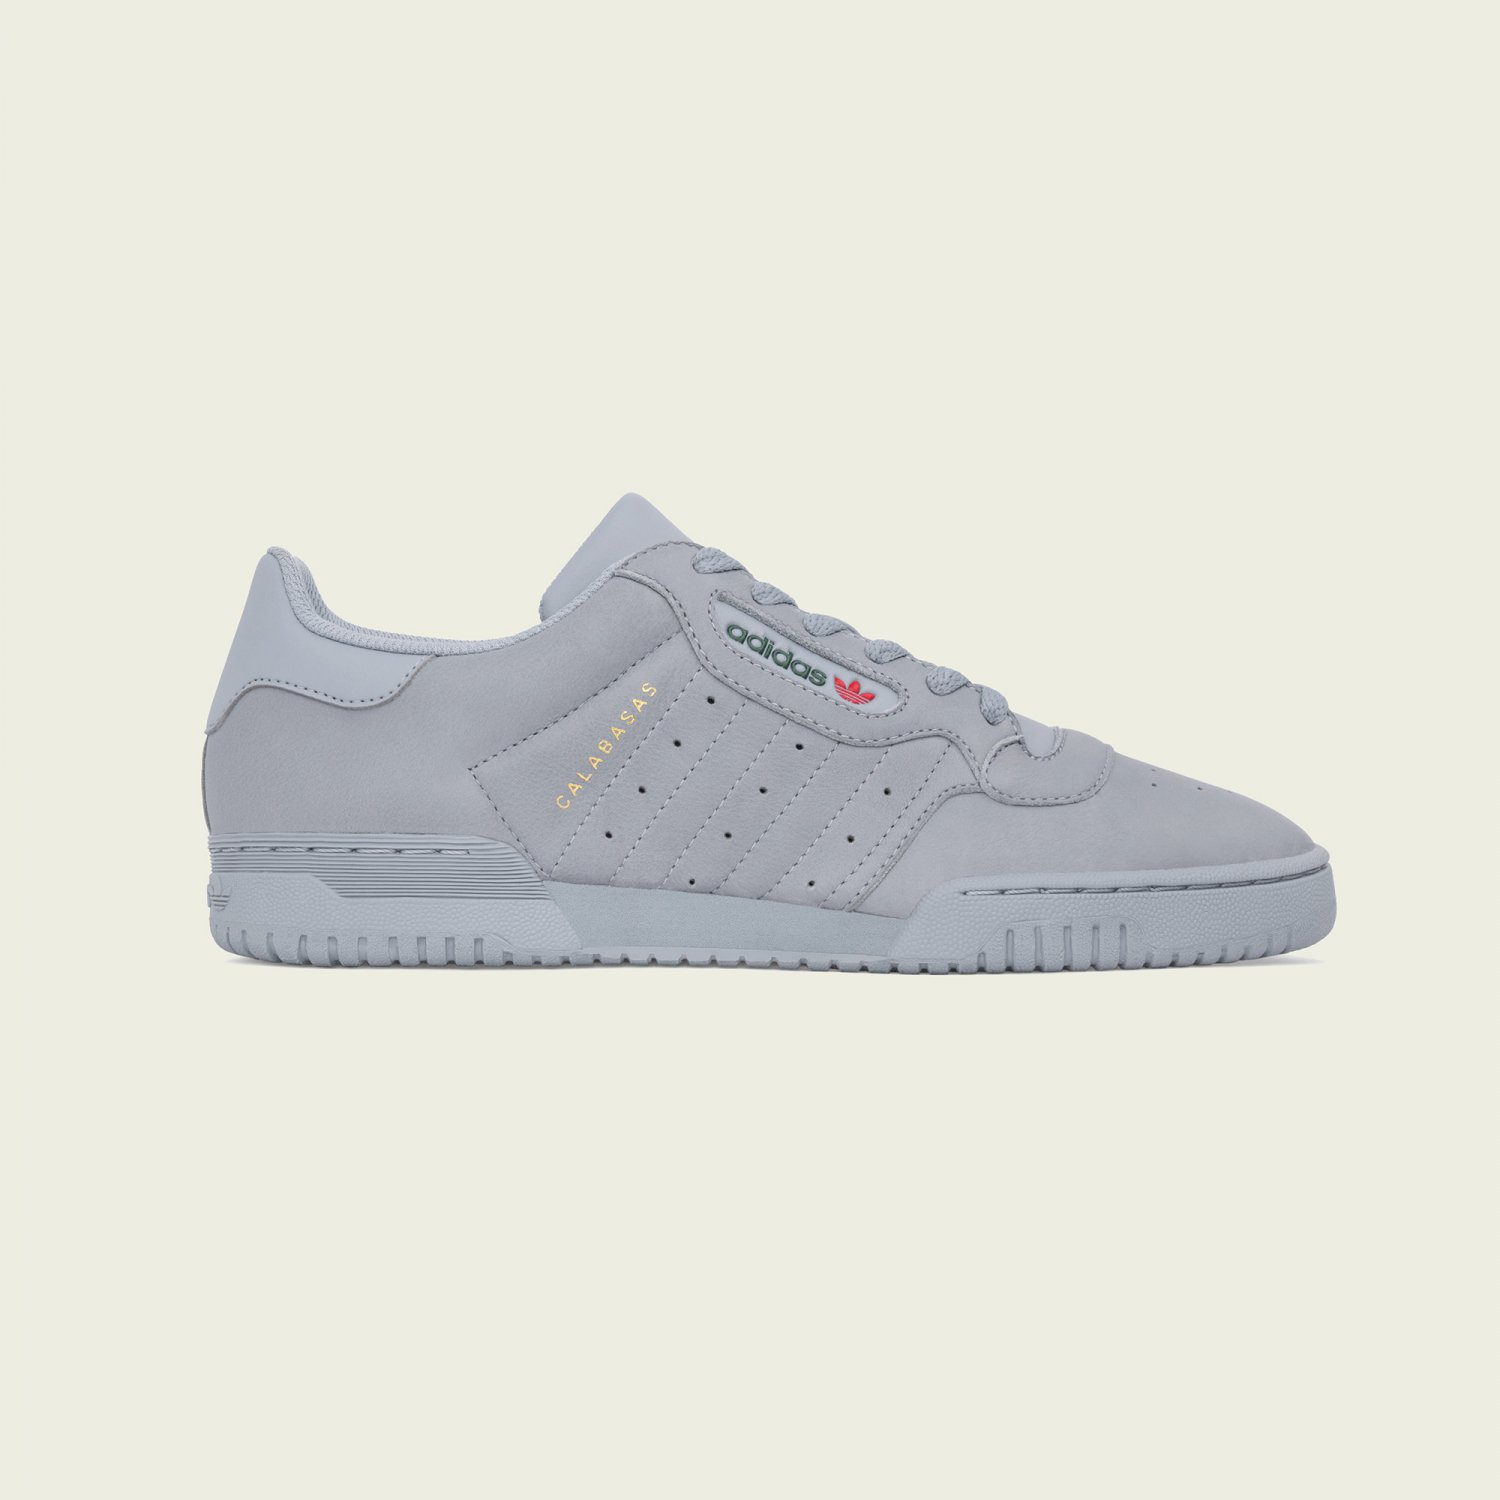 Yeezy Powerphase Calabasas Grey [1]